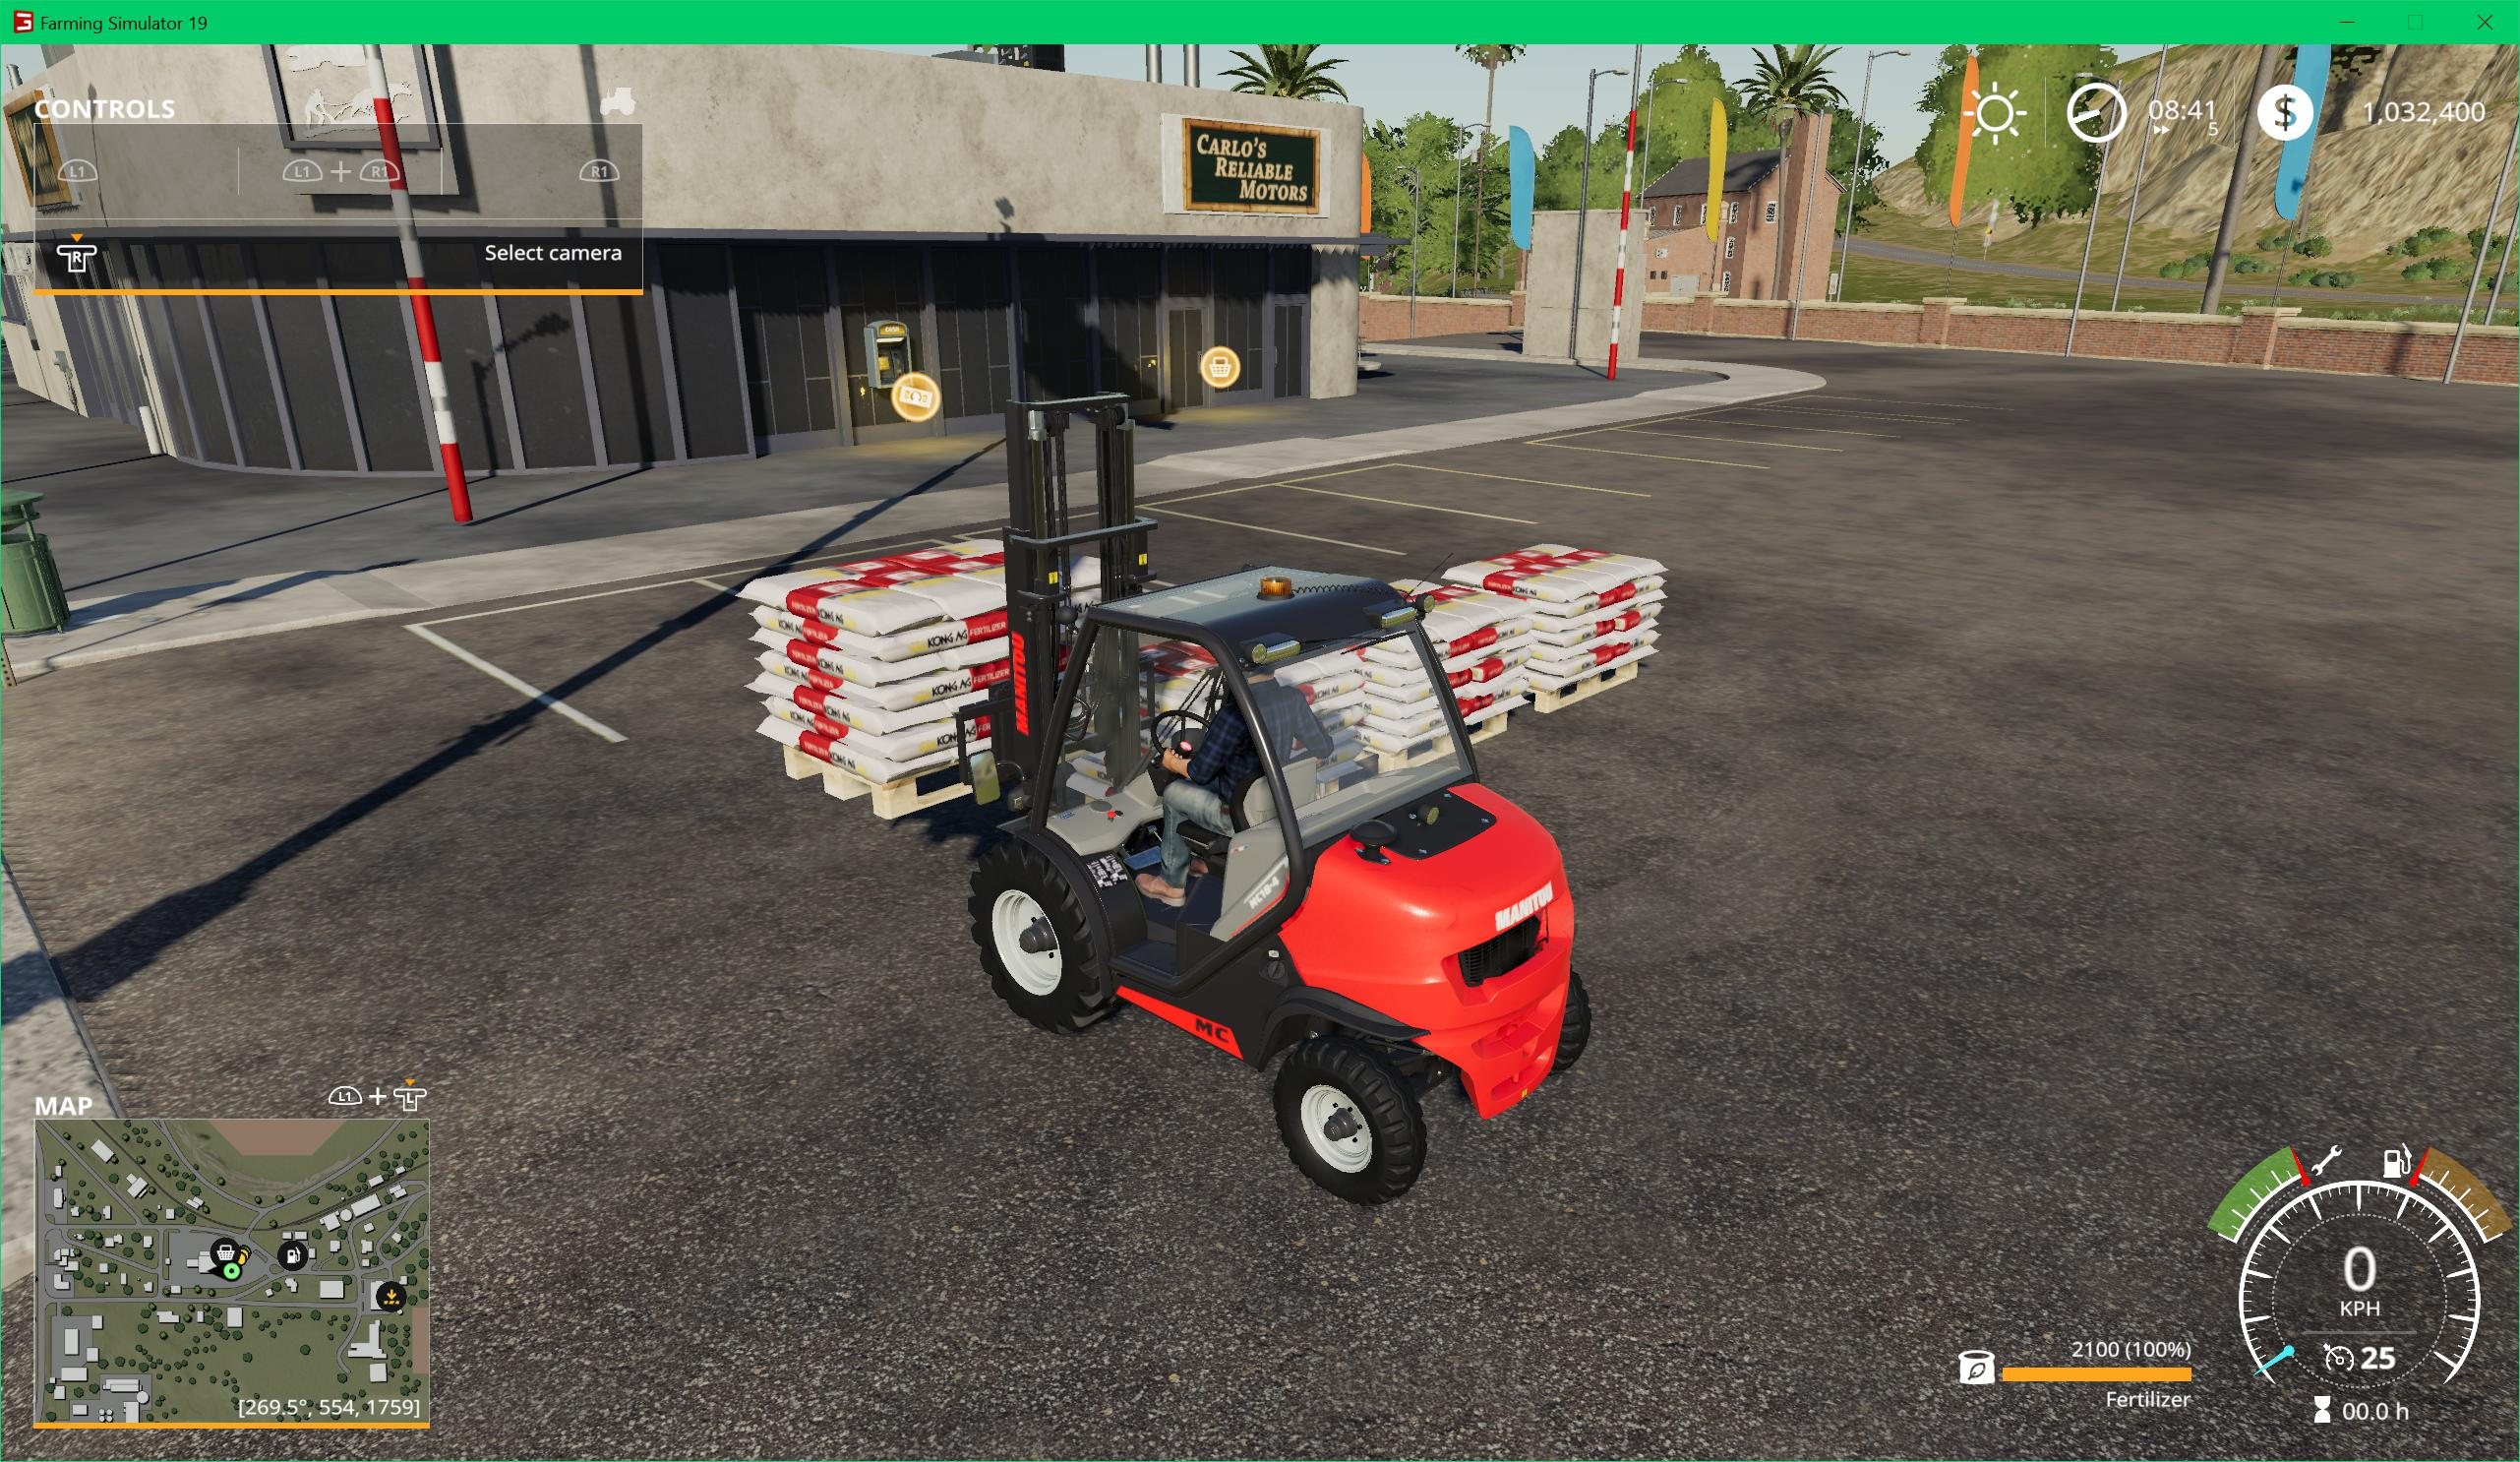 FS19 - Kong Ag Fertilizer Pallet V1.0.0.2